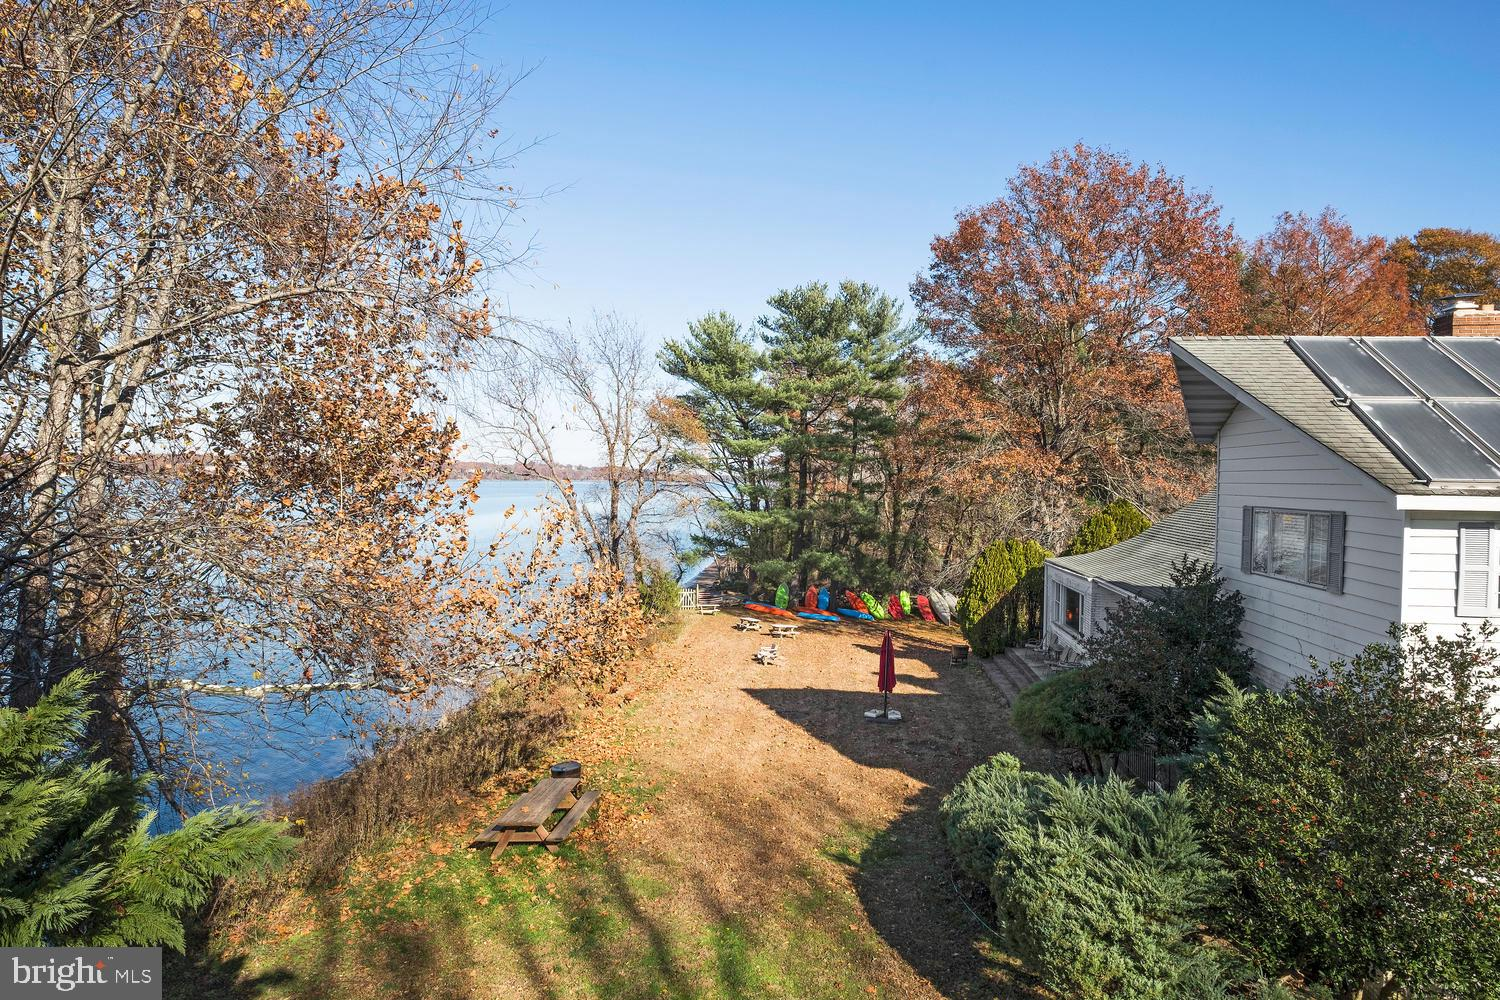 Cataway, as many in the Washington area call it, is a 13-acre secluded estate on the Potomac River c